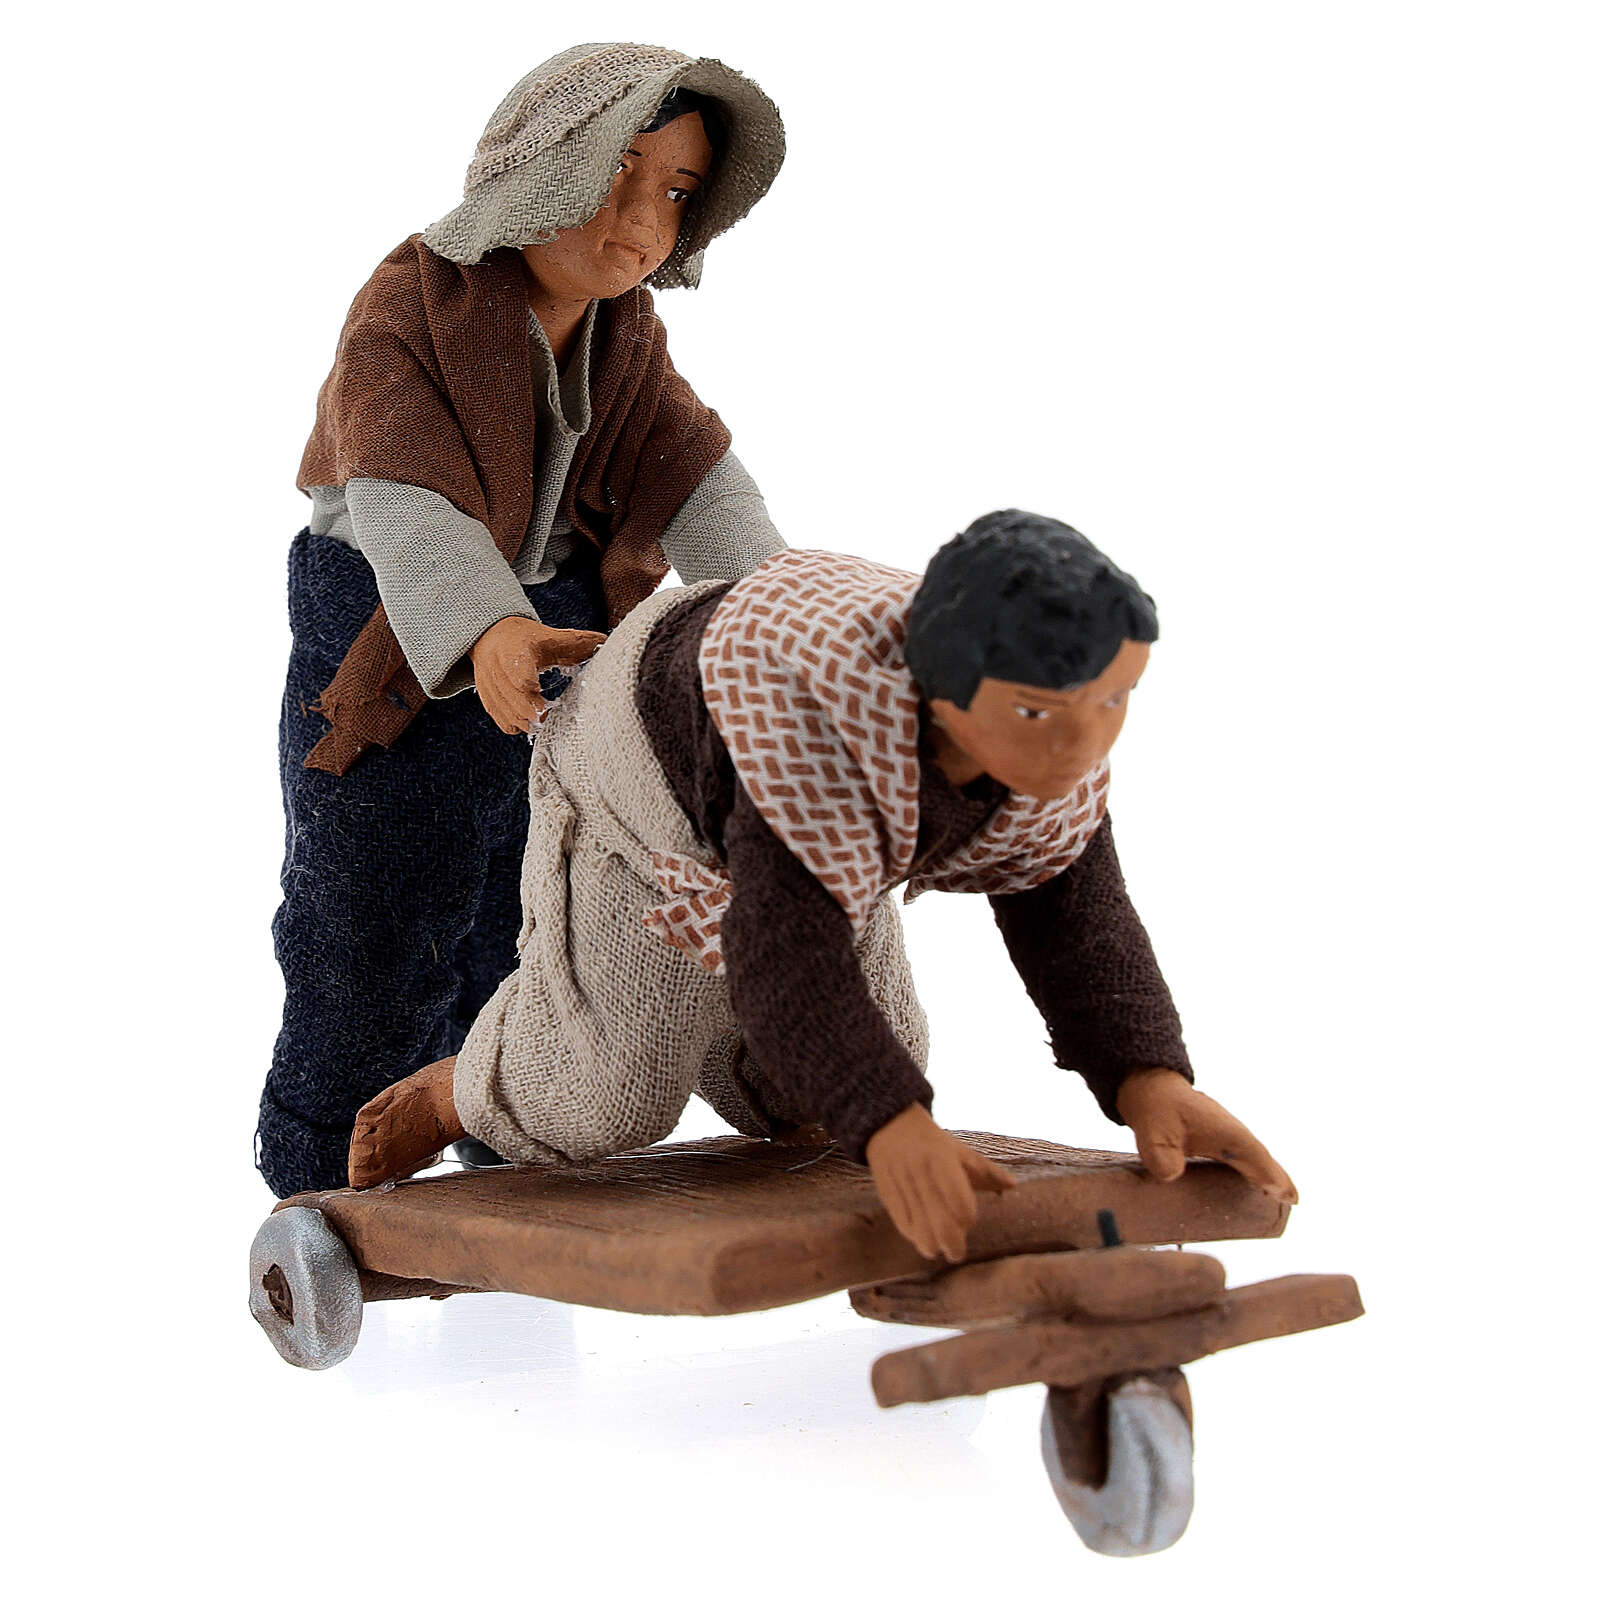 Children playing on a cart scene, 13 cm Neapolitan nativity 4